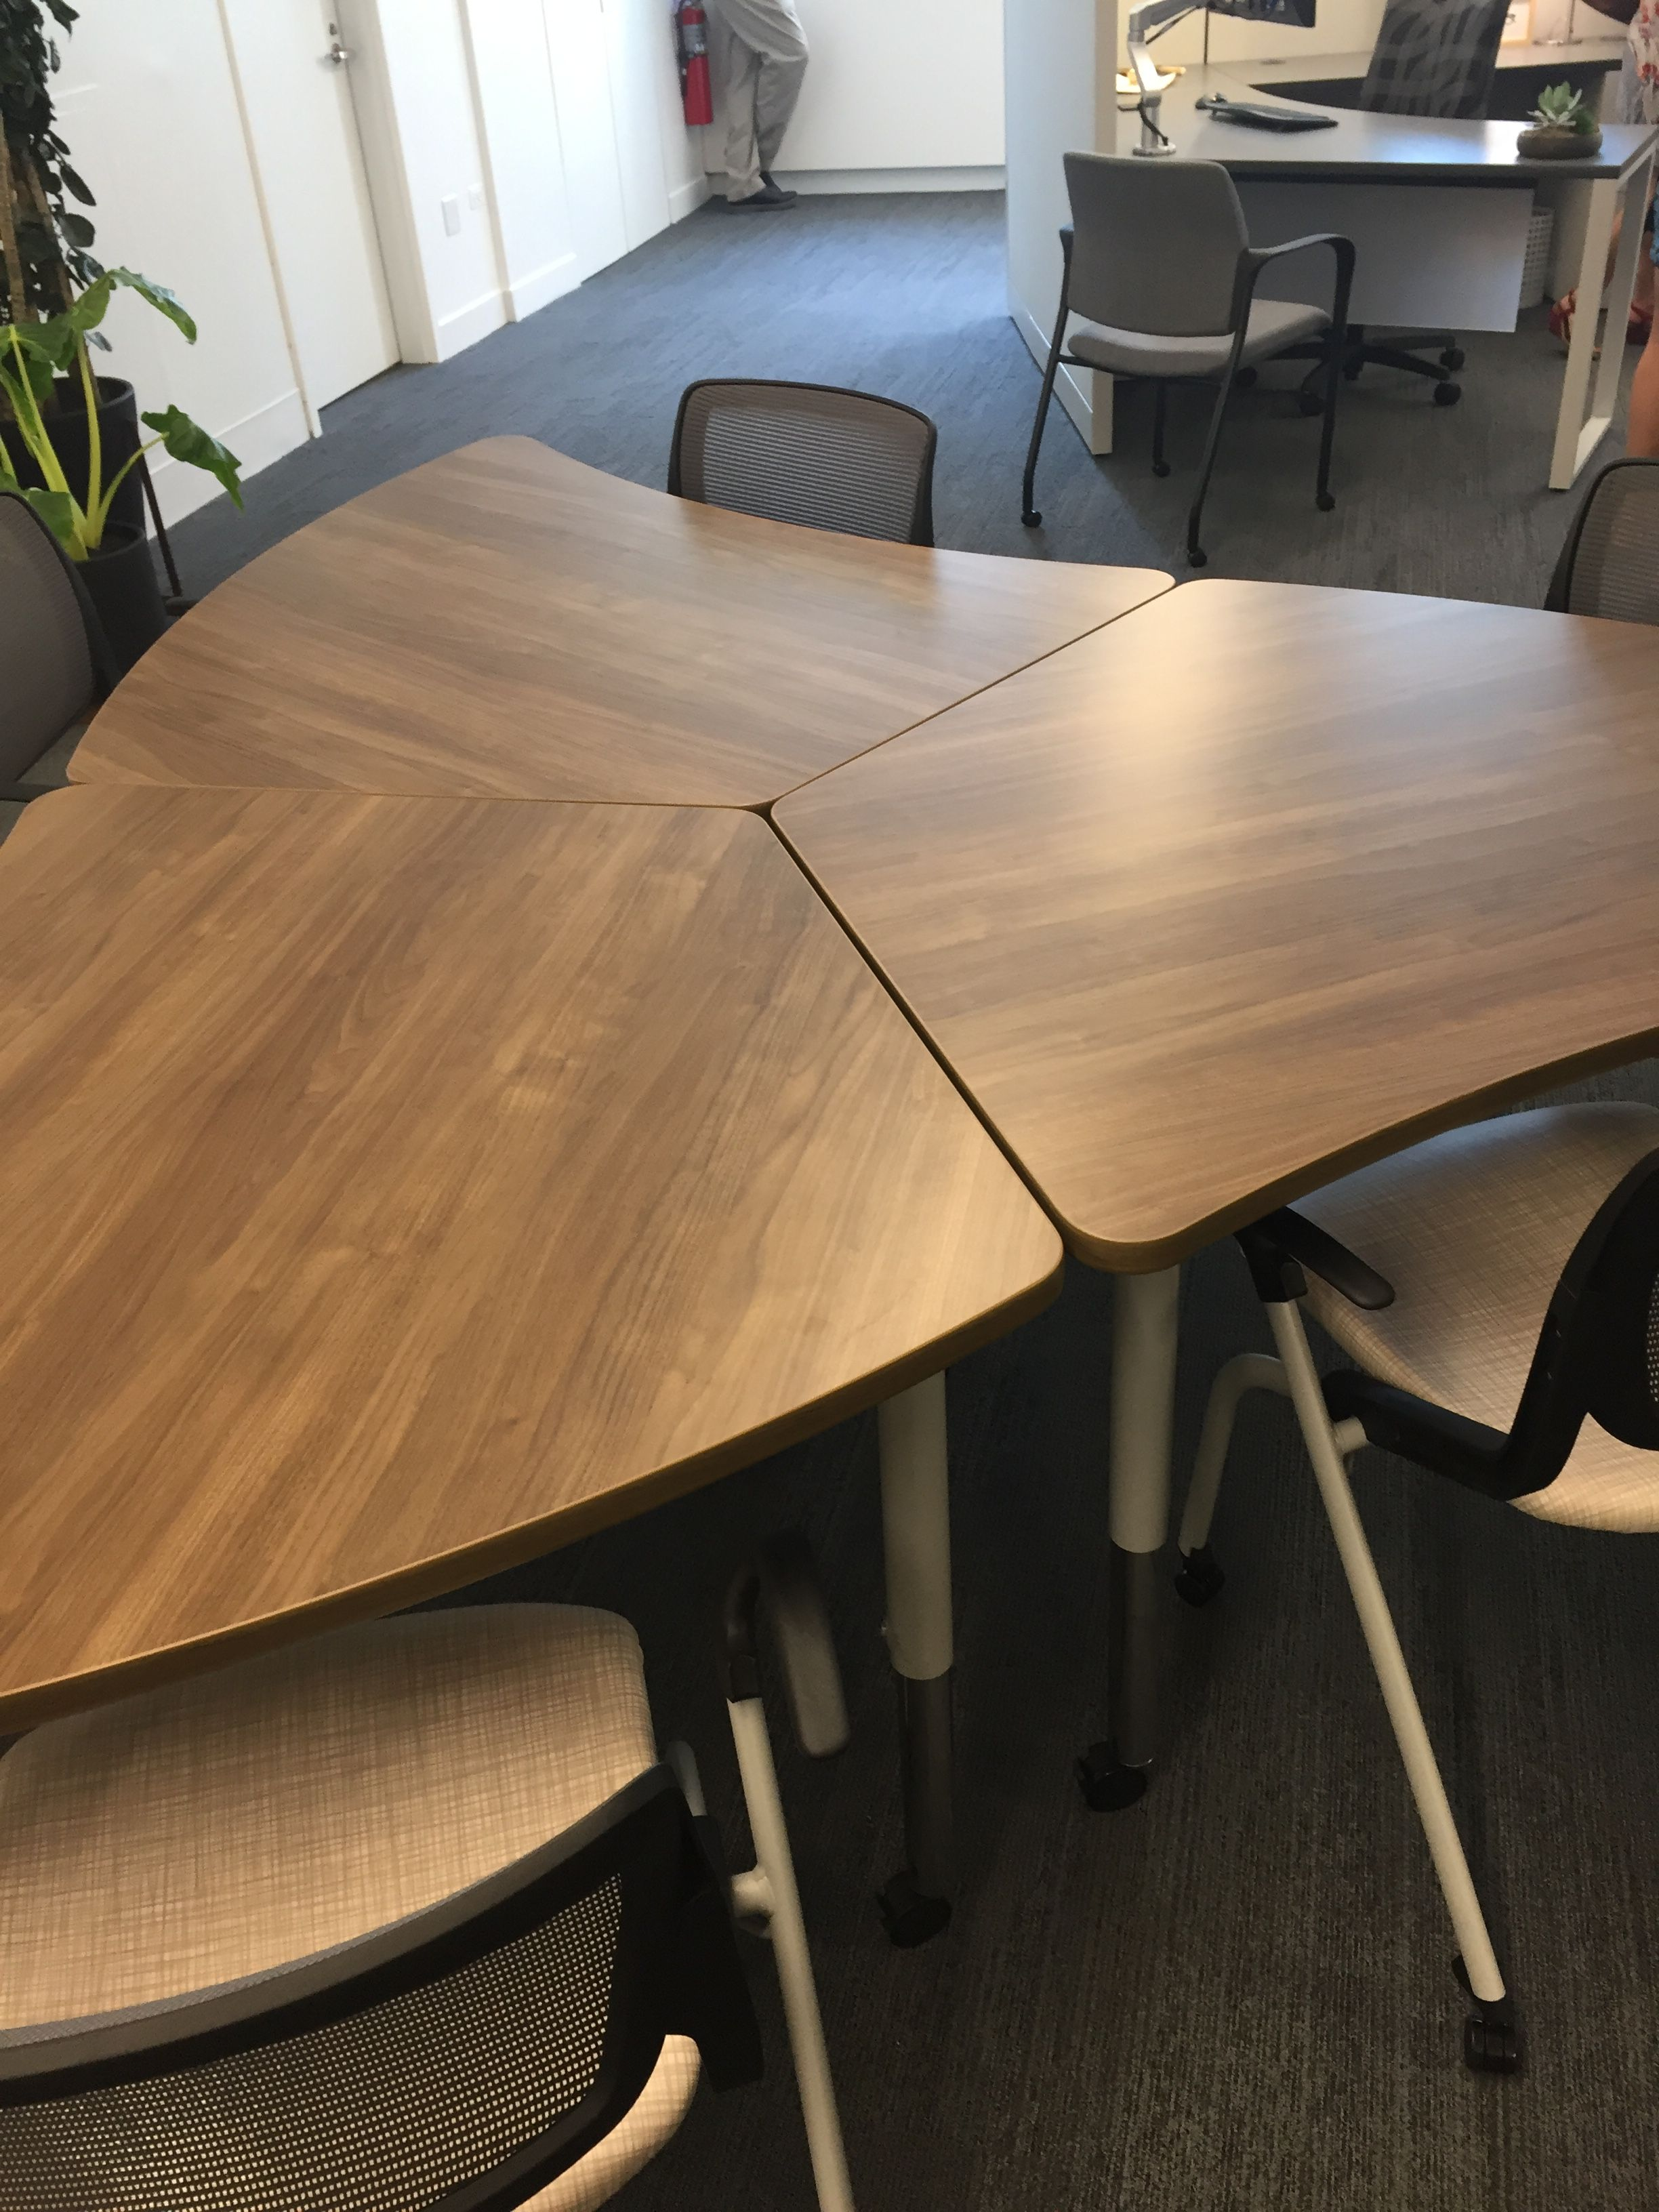 hon neocon 2017 tables neocon 2017 home decor table furniture rh pinterest com